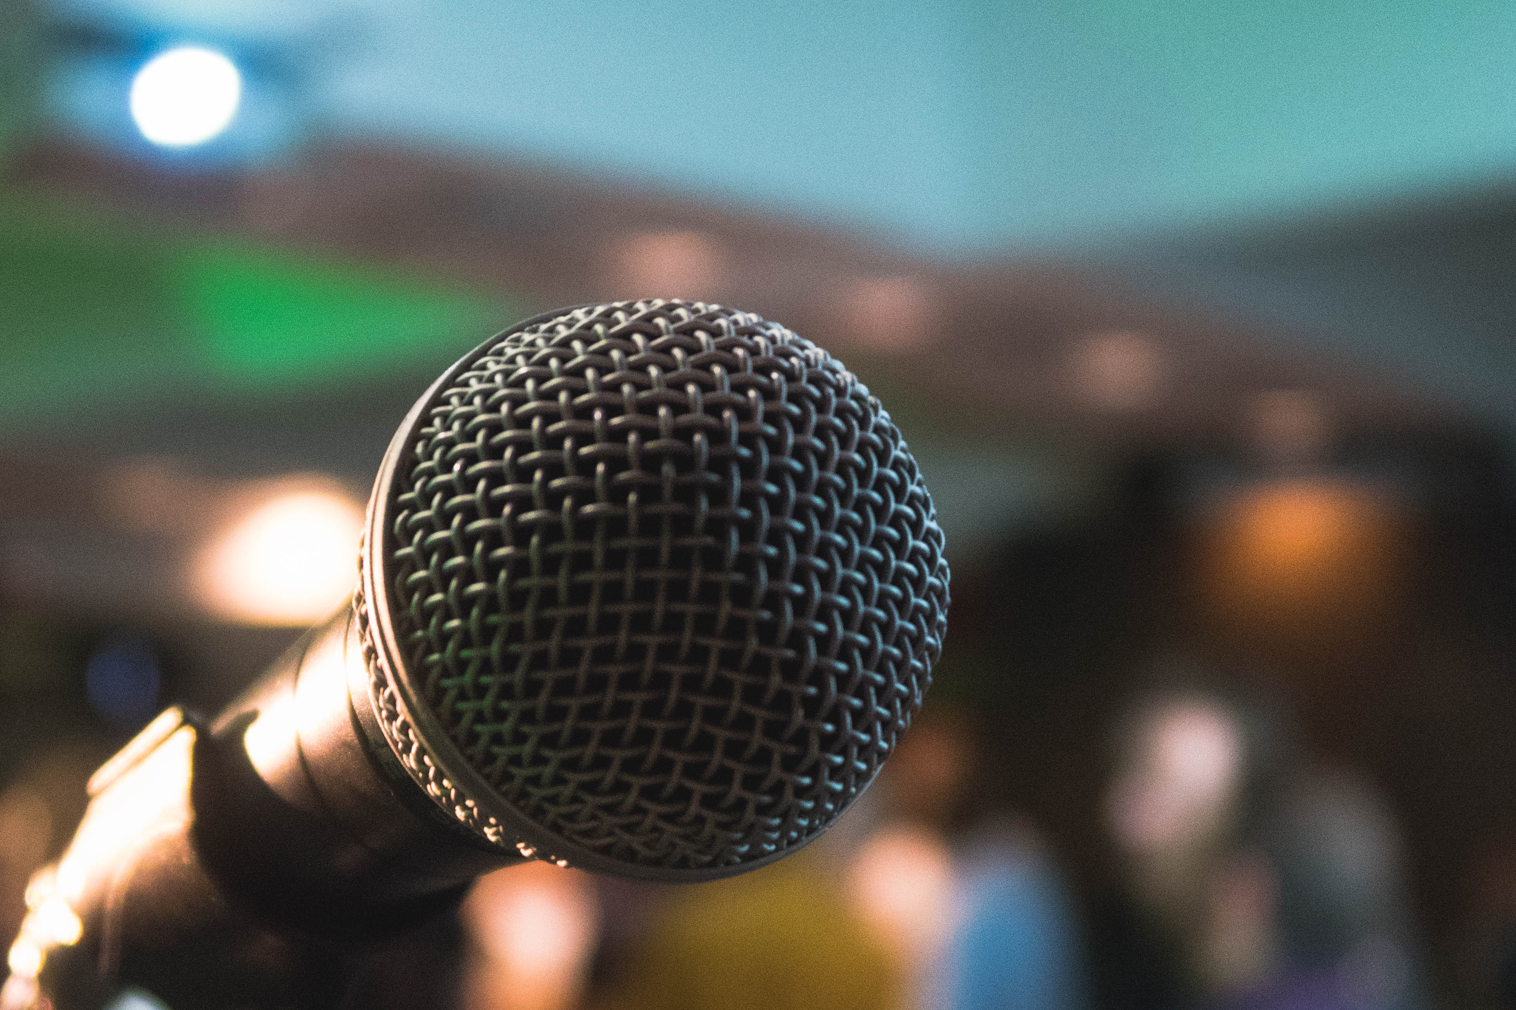 microphone in front of blurred background with people